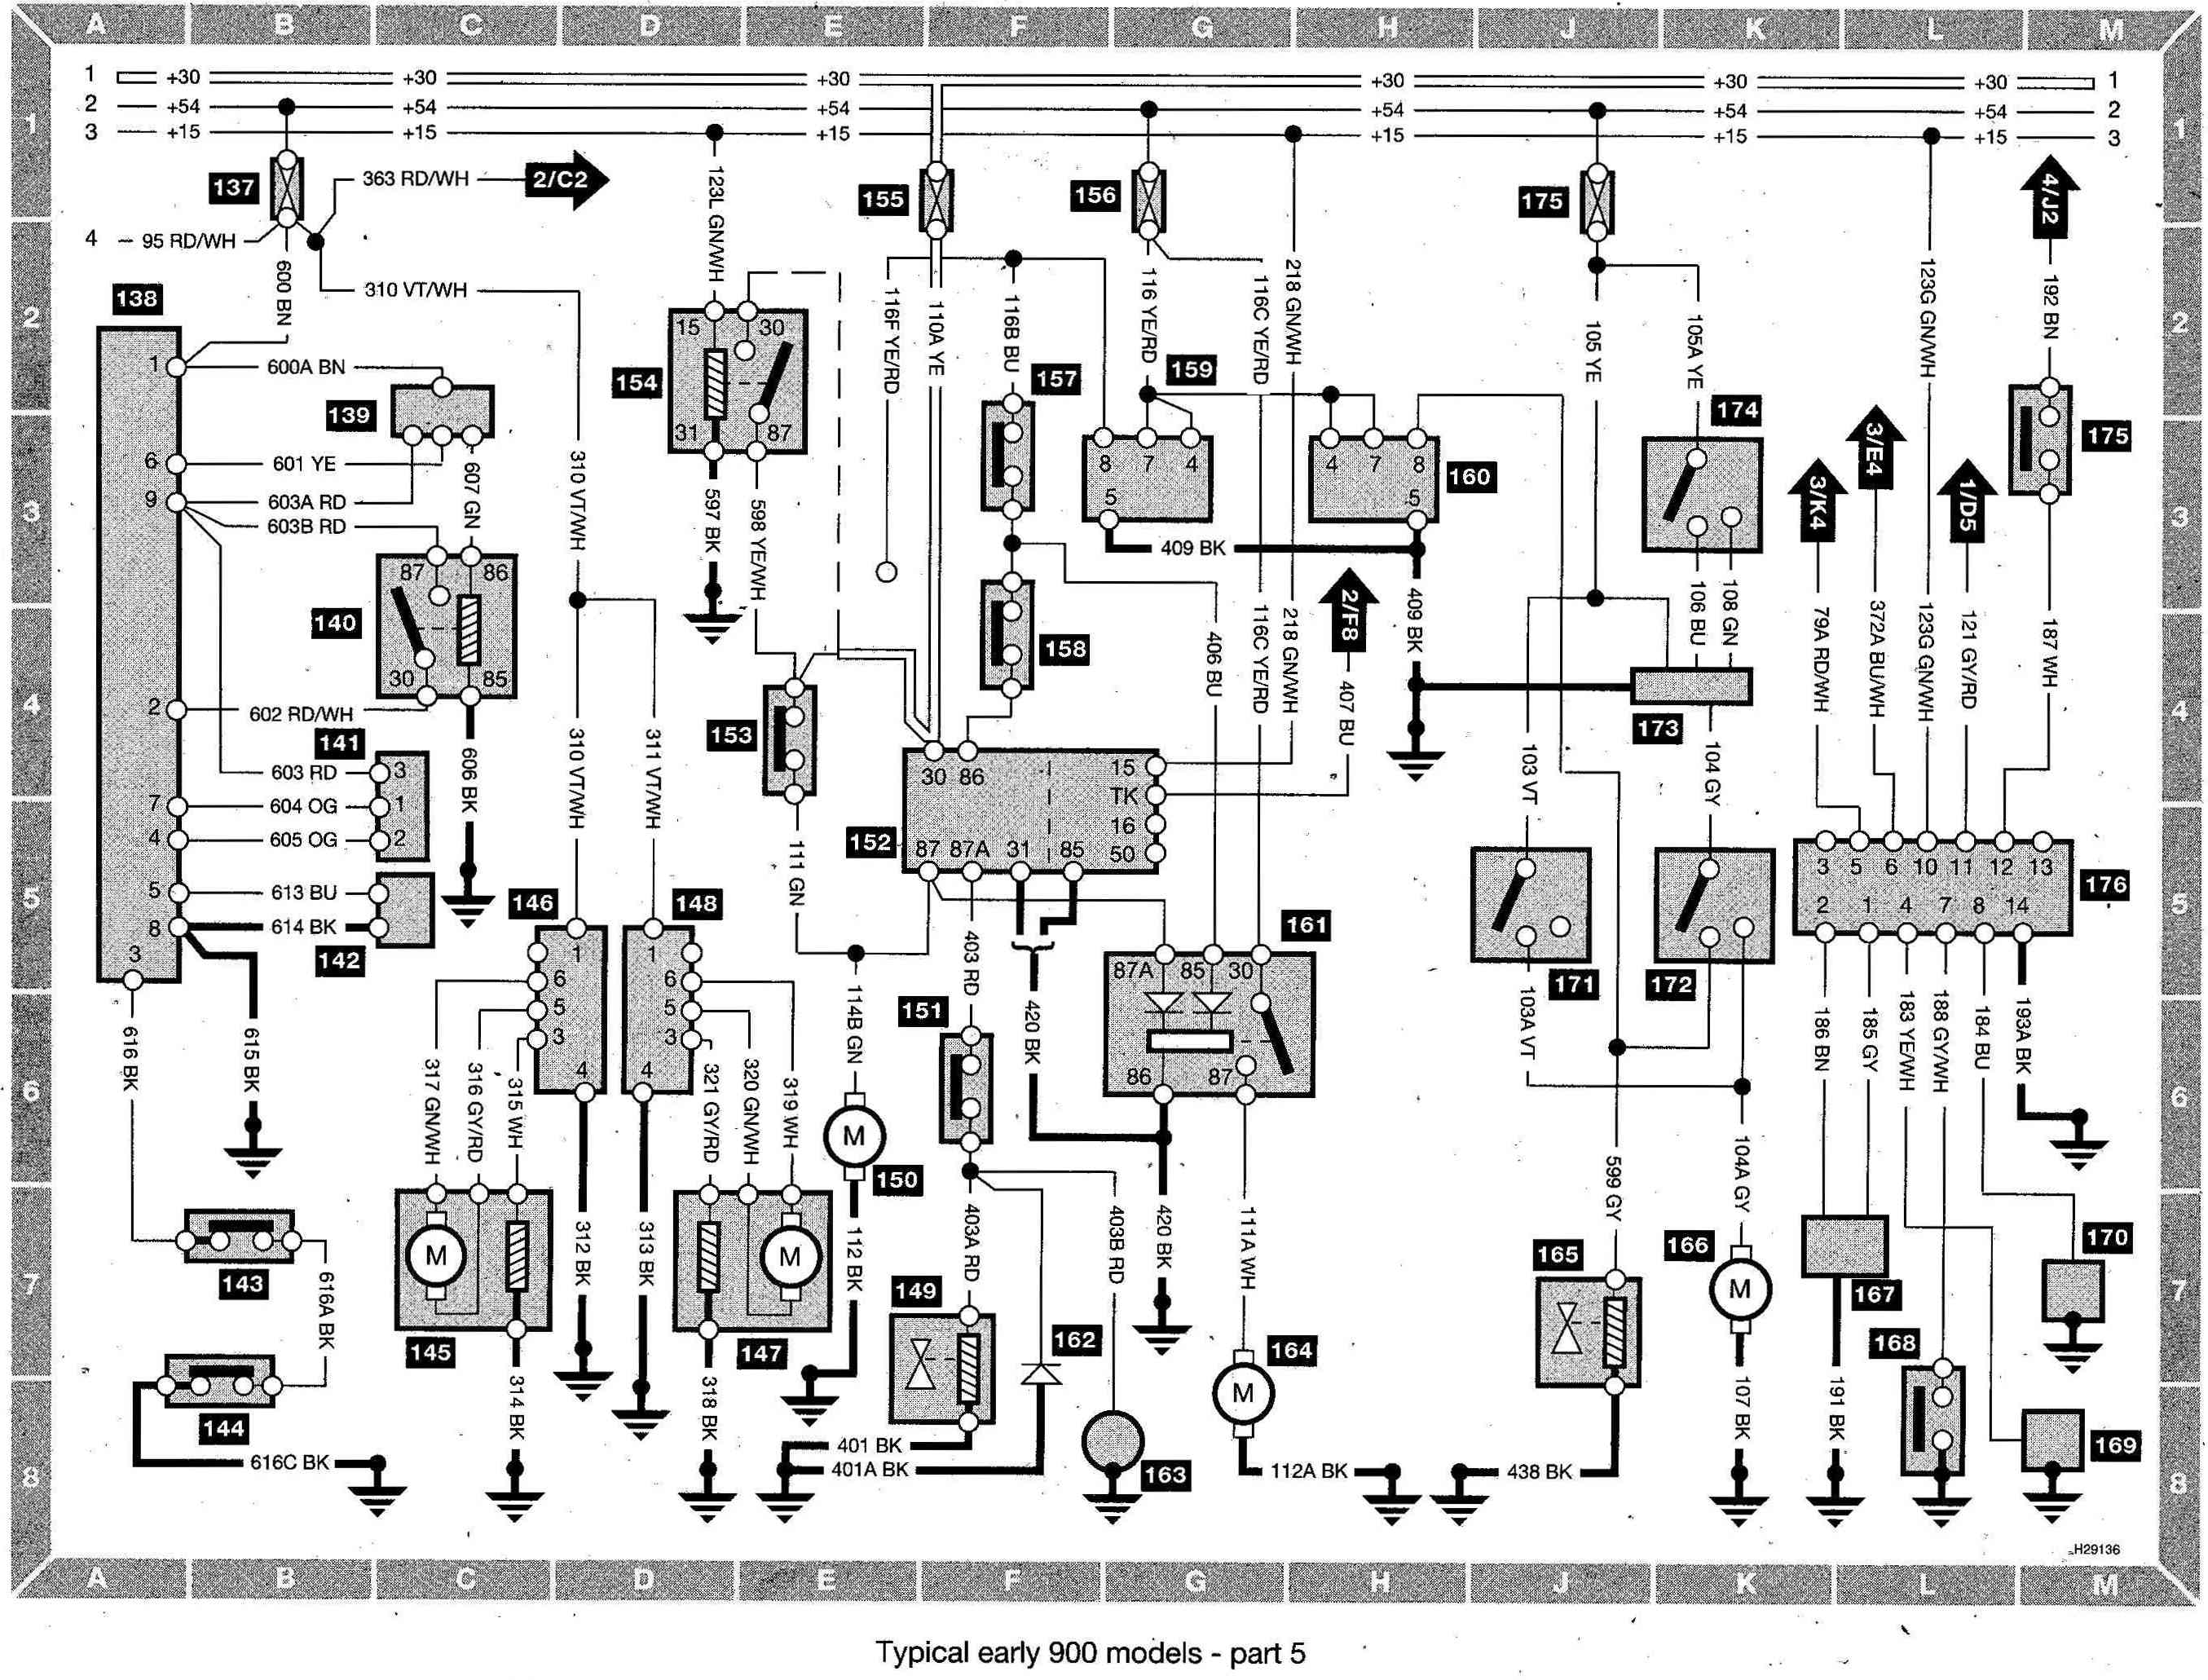 Saab 900 Wiring diagram (early models) part 5 saab 900 wiring diagram pdf 2003 saab 9 3 fuse box diagram 2003 saab 9-3 radio wiring diagram at eliteediting.co